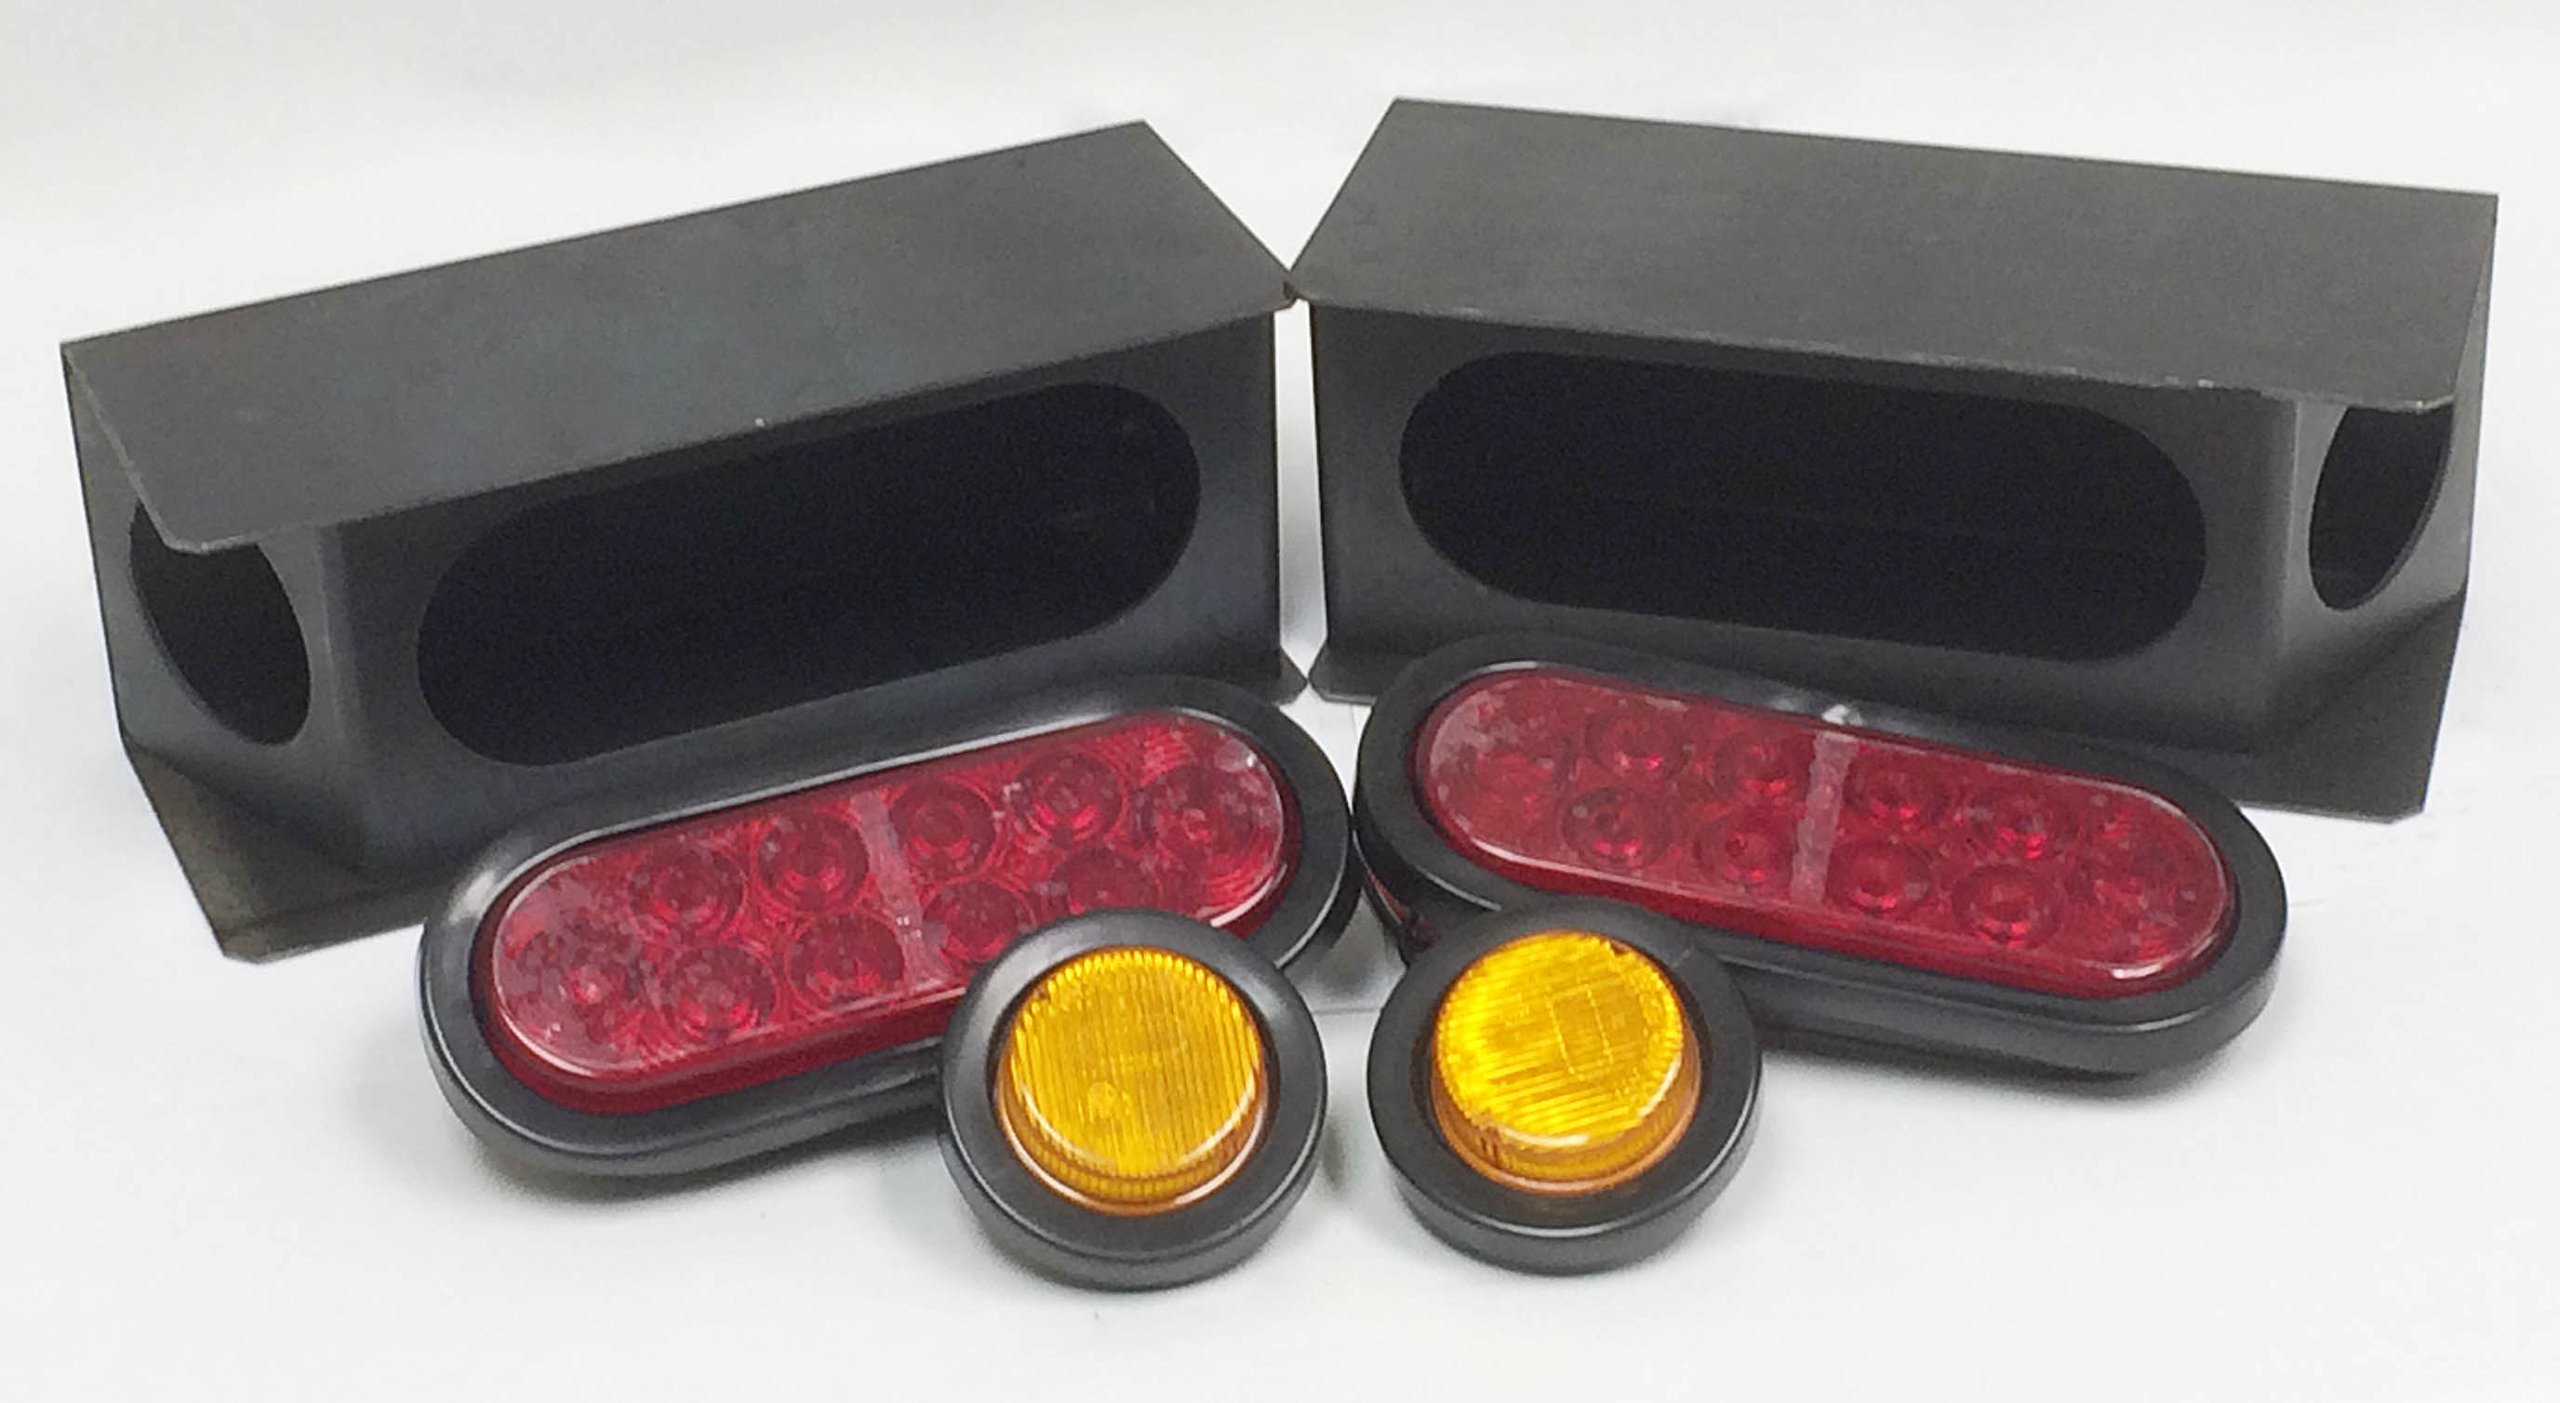 2 Steel Trailer Angled Light Boxes w/ 6'' Red Oval & 2'' Round Amber LED Lights